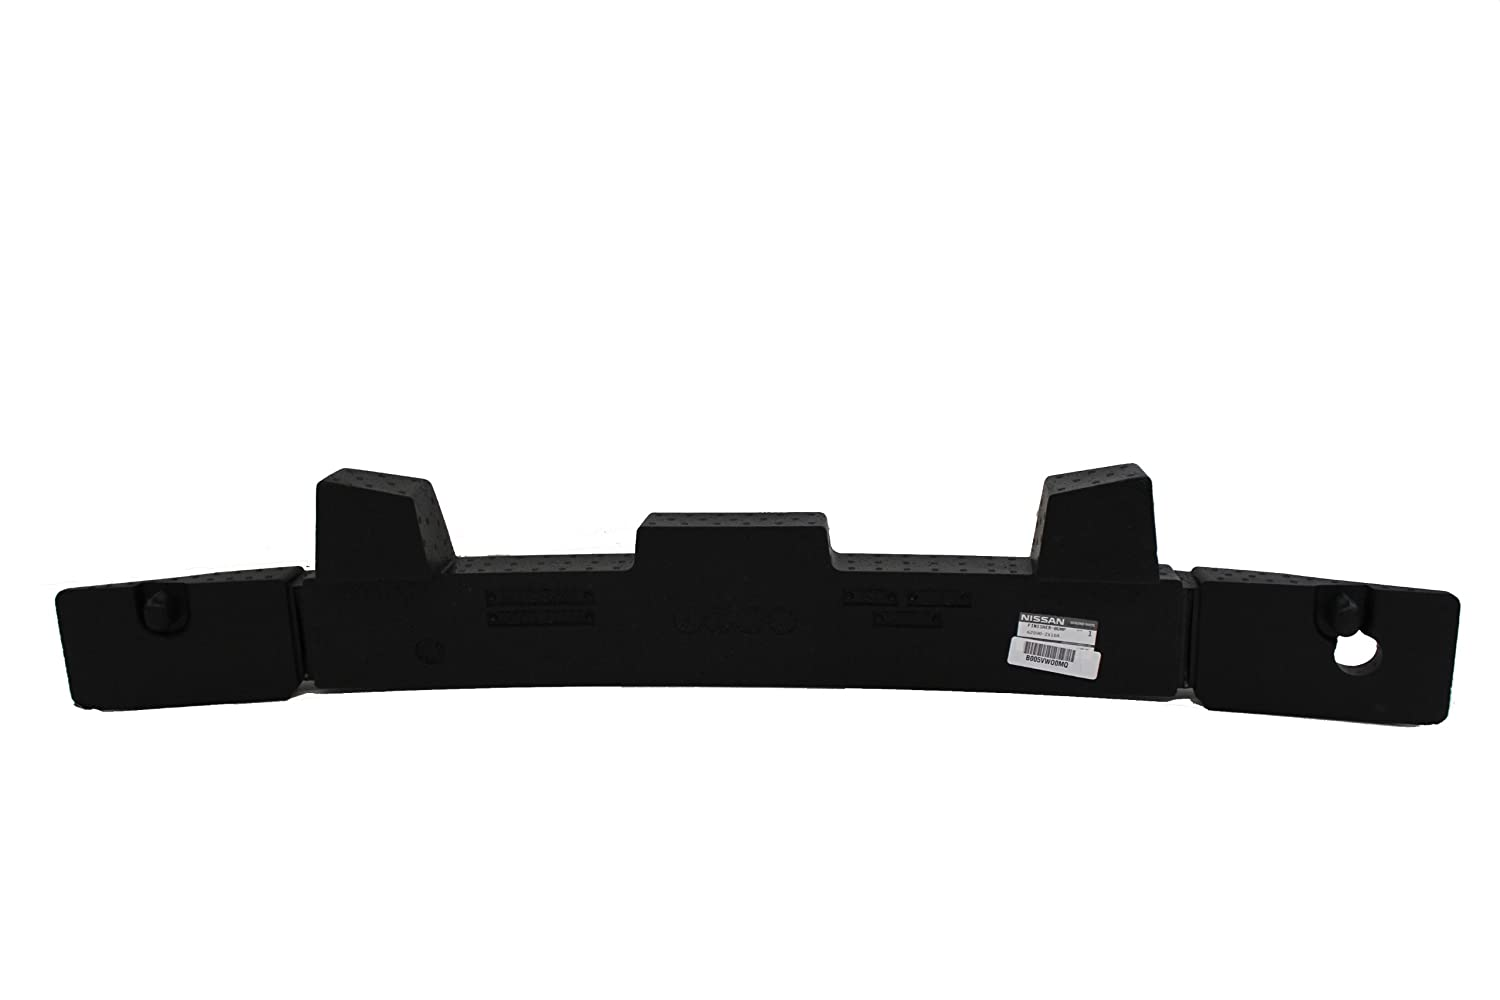 Genuine Nissan Parts 62090-ZX10A Front Bumper Energy Absorber